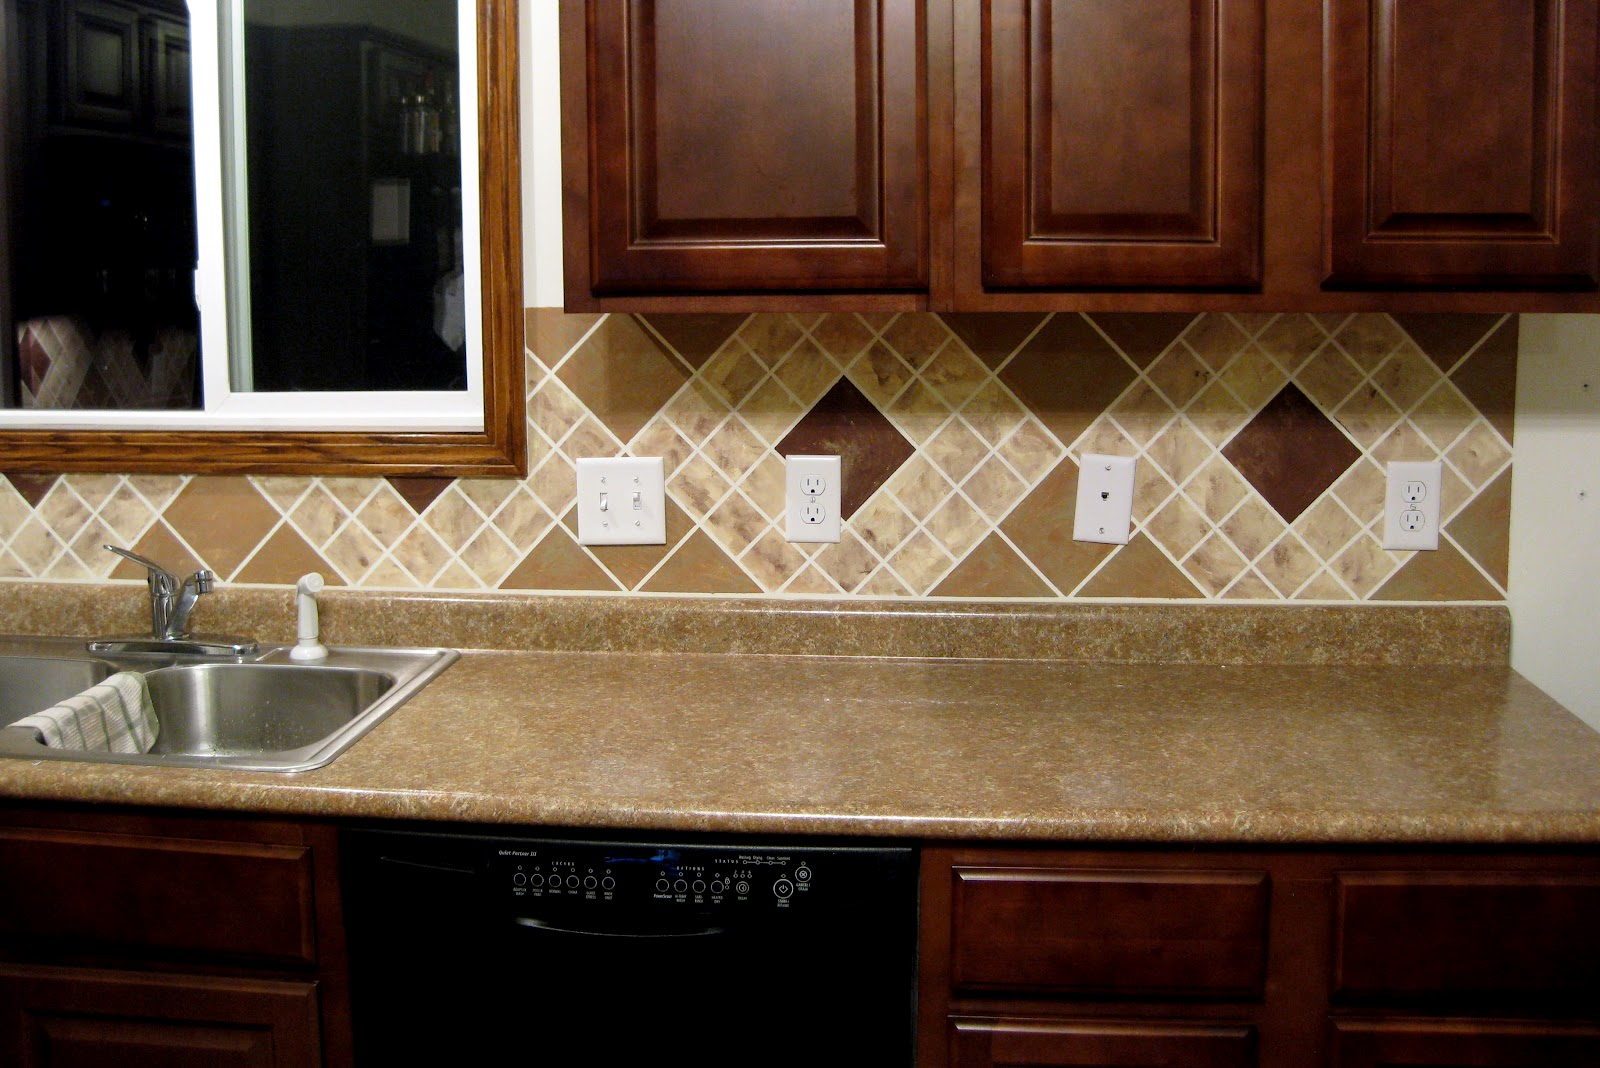 Painted Backsplash Ideas painted backsplash tutorial!! - reality daydream